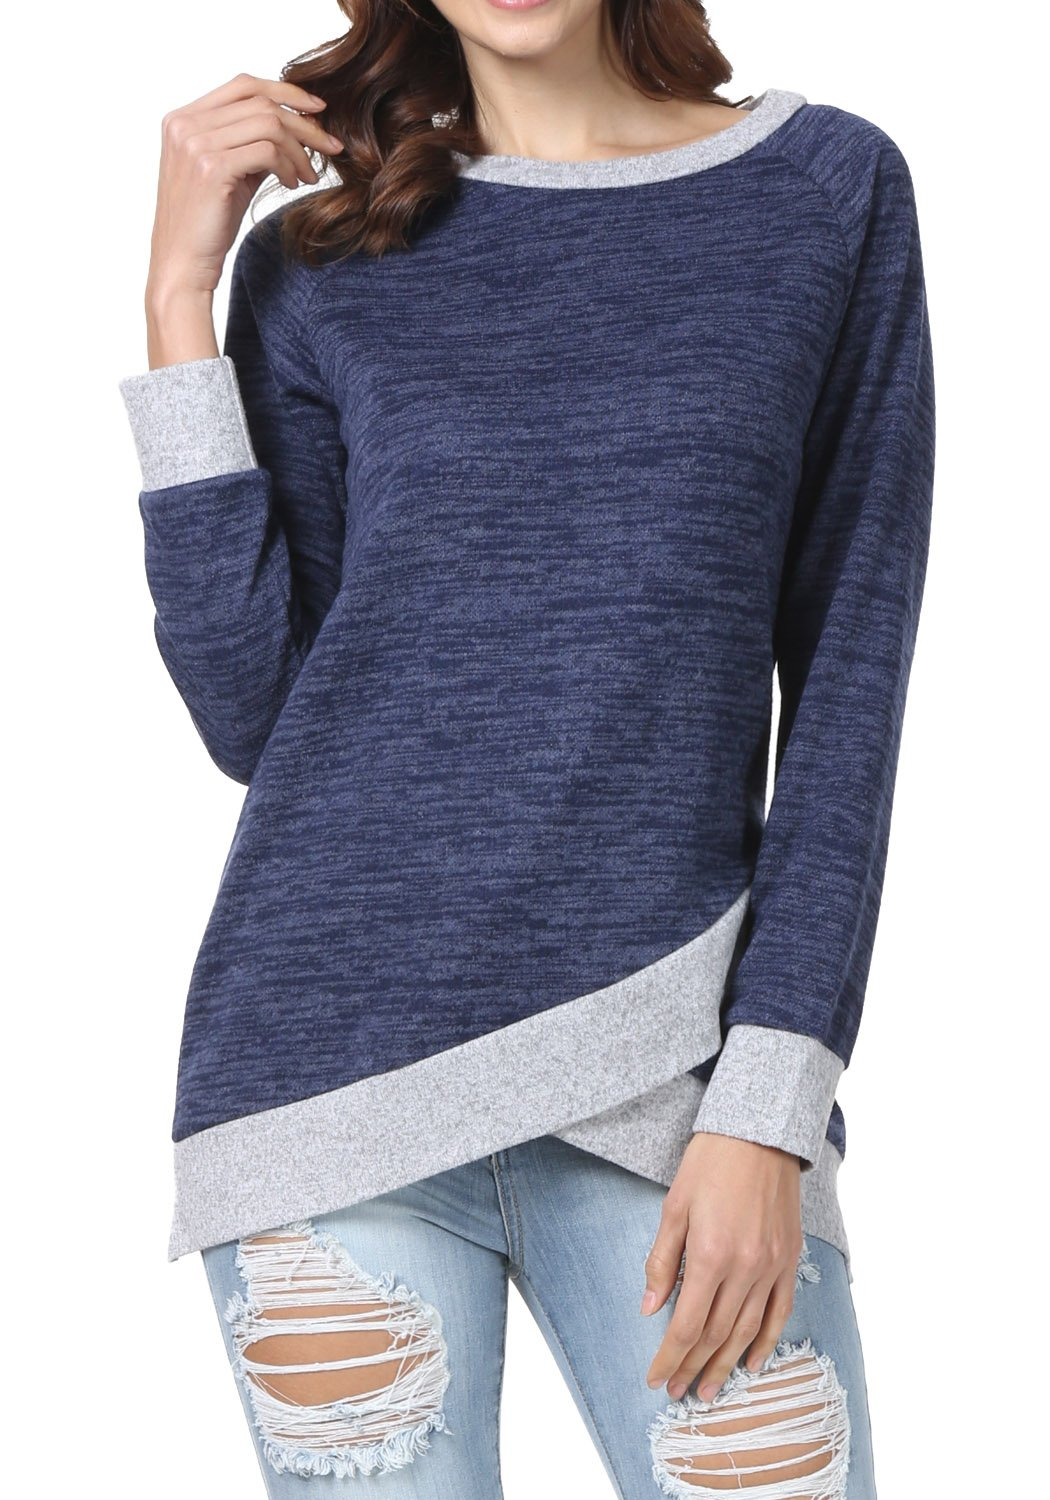 levaca Womens Long Sleeve O Neck Cross Loose Fit Casual Blouse Tunic Tops Blue M by levaca (Image #1)